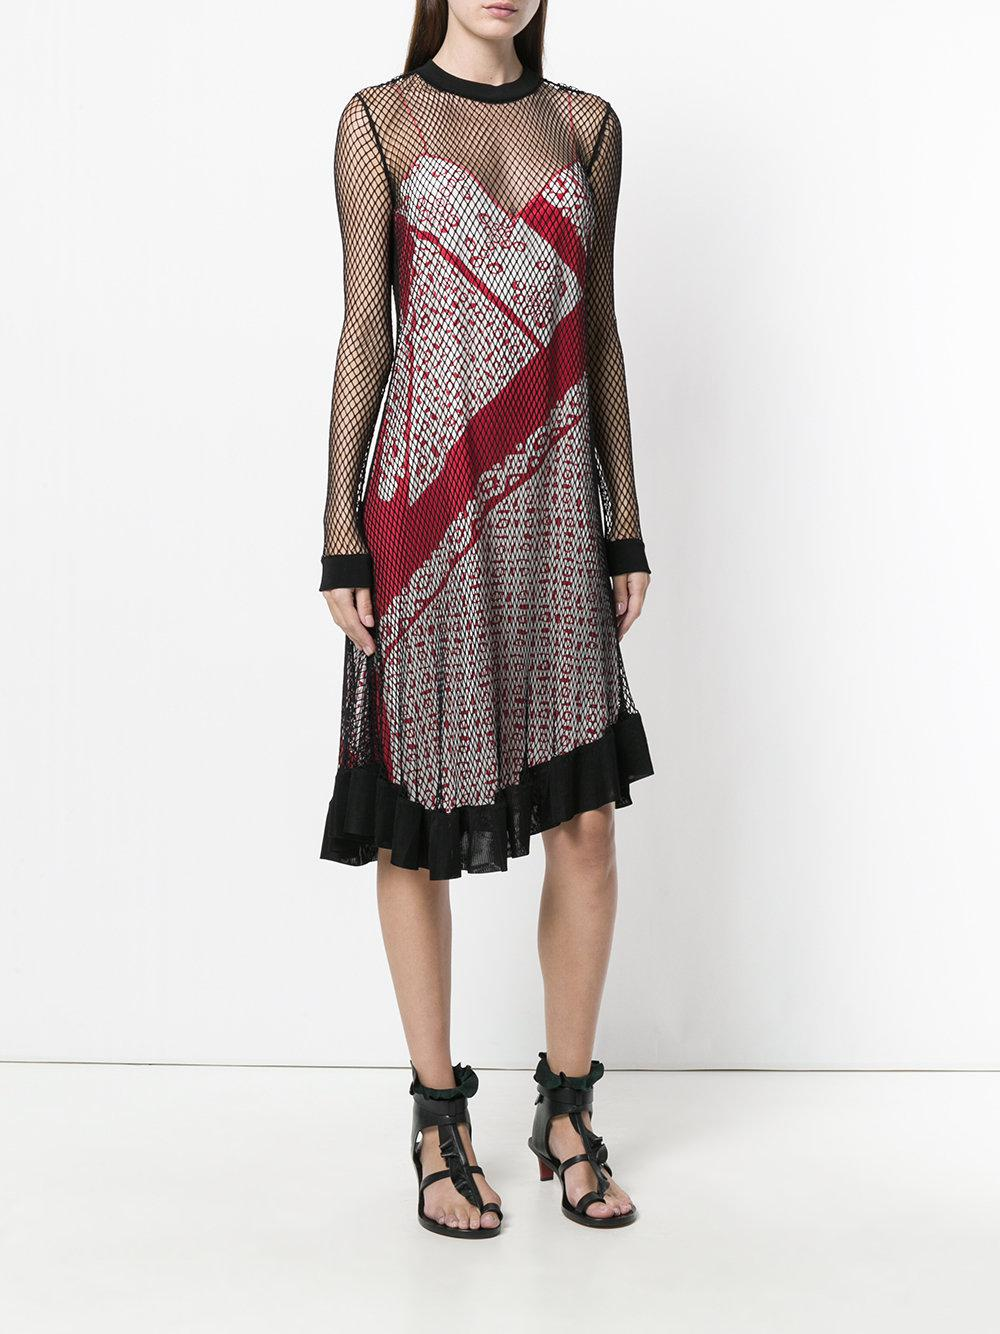 engineered animal stripe print cami dress with mesh overlayer - Multicolour Altuzarra 6mVBIoBCL7